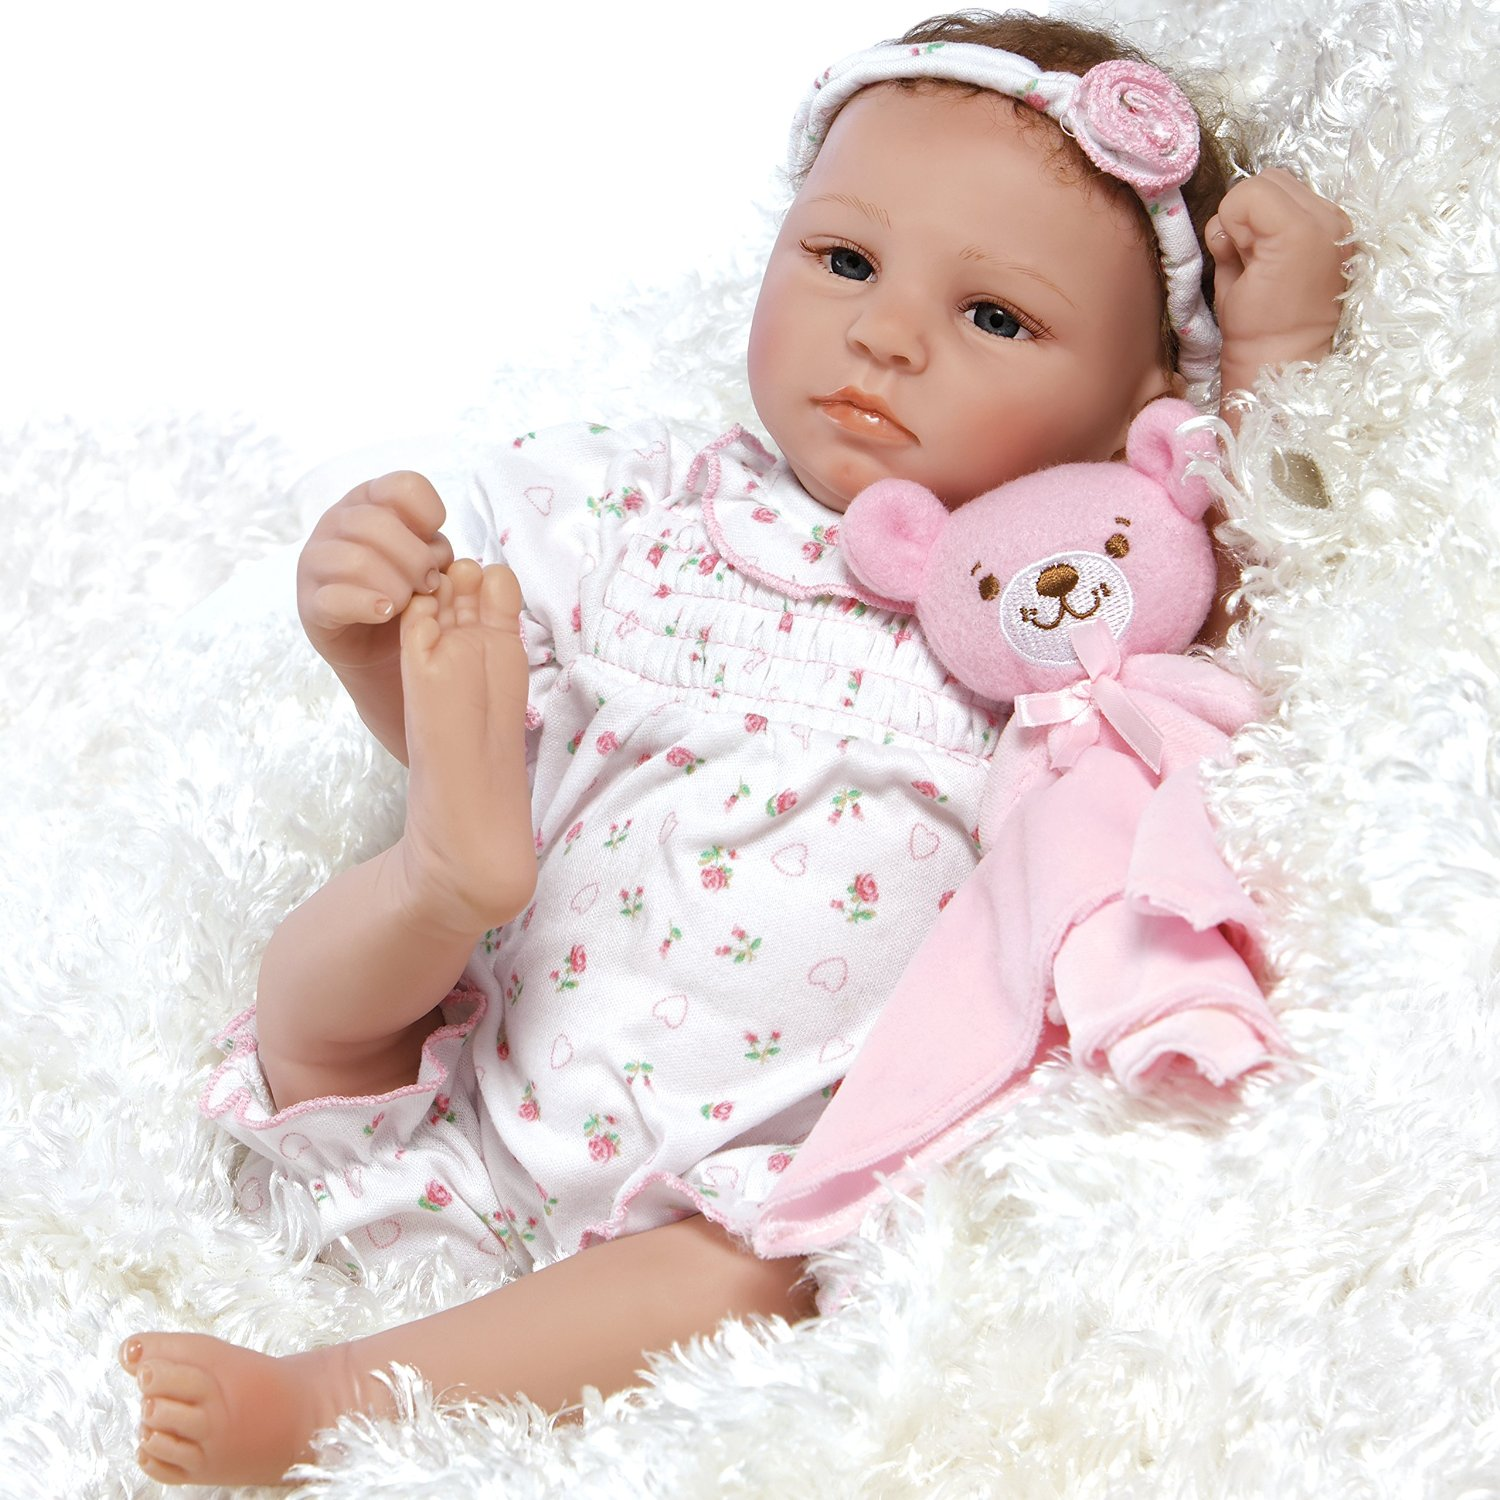 "Paradise Galleries Lifelike Realistic Soft Vinyl Weighted 20 inch Baby Girl  Doll Gift ""Bundle of Joy"" Great to Reborn"